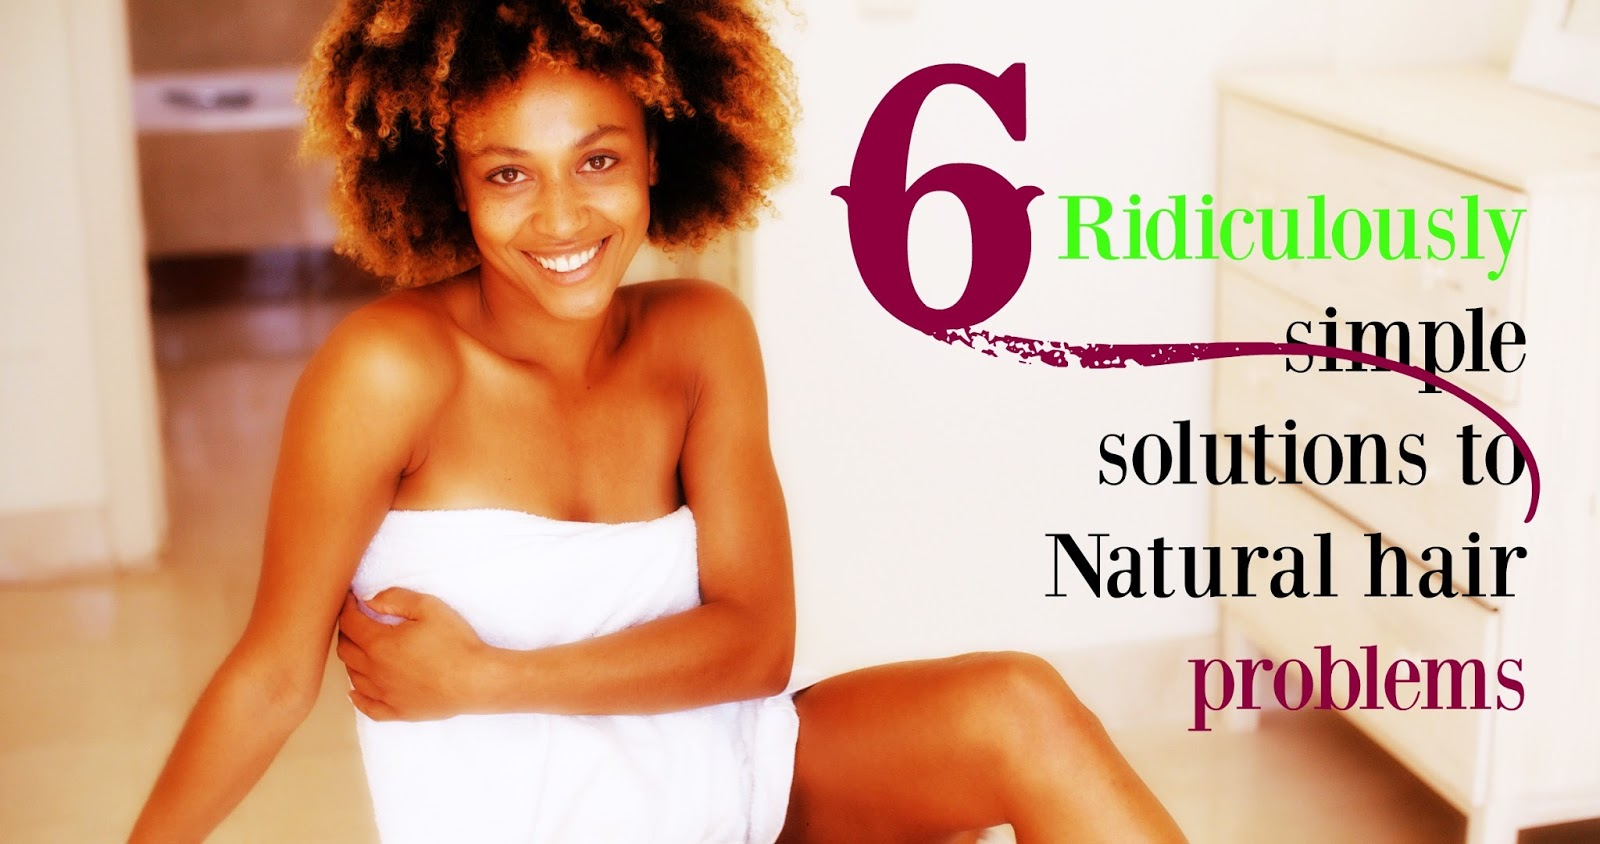 6 Ridiculously simple solutions to Natural hair problems